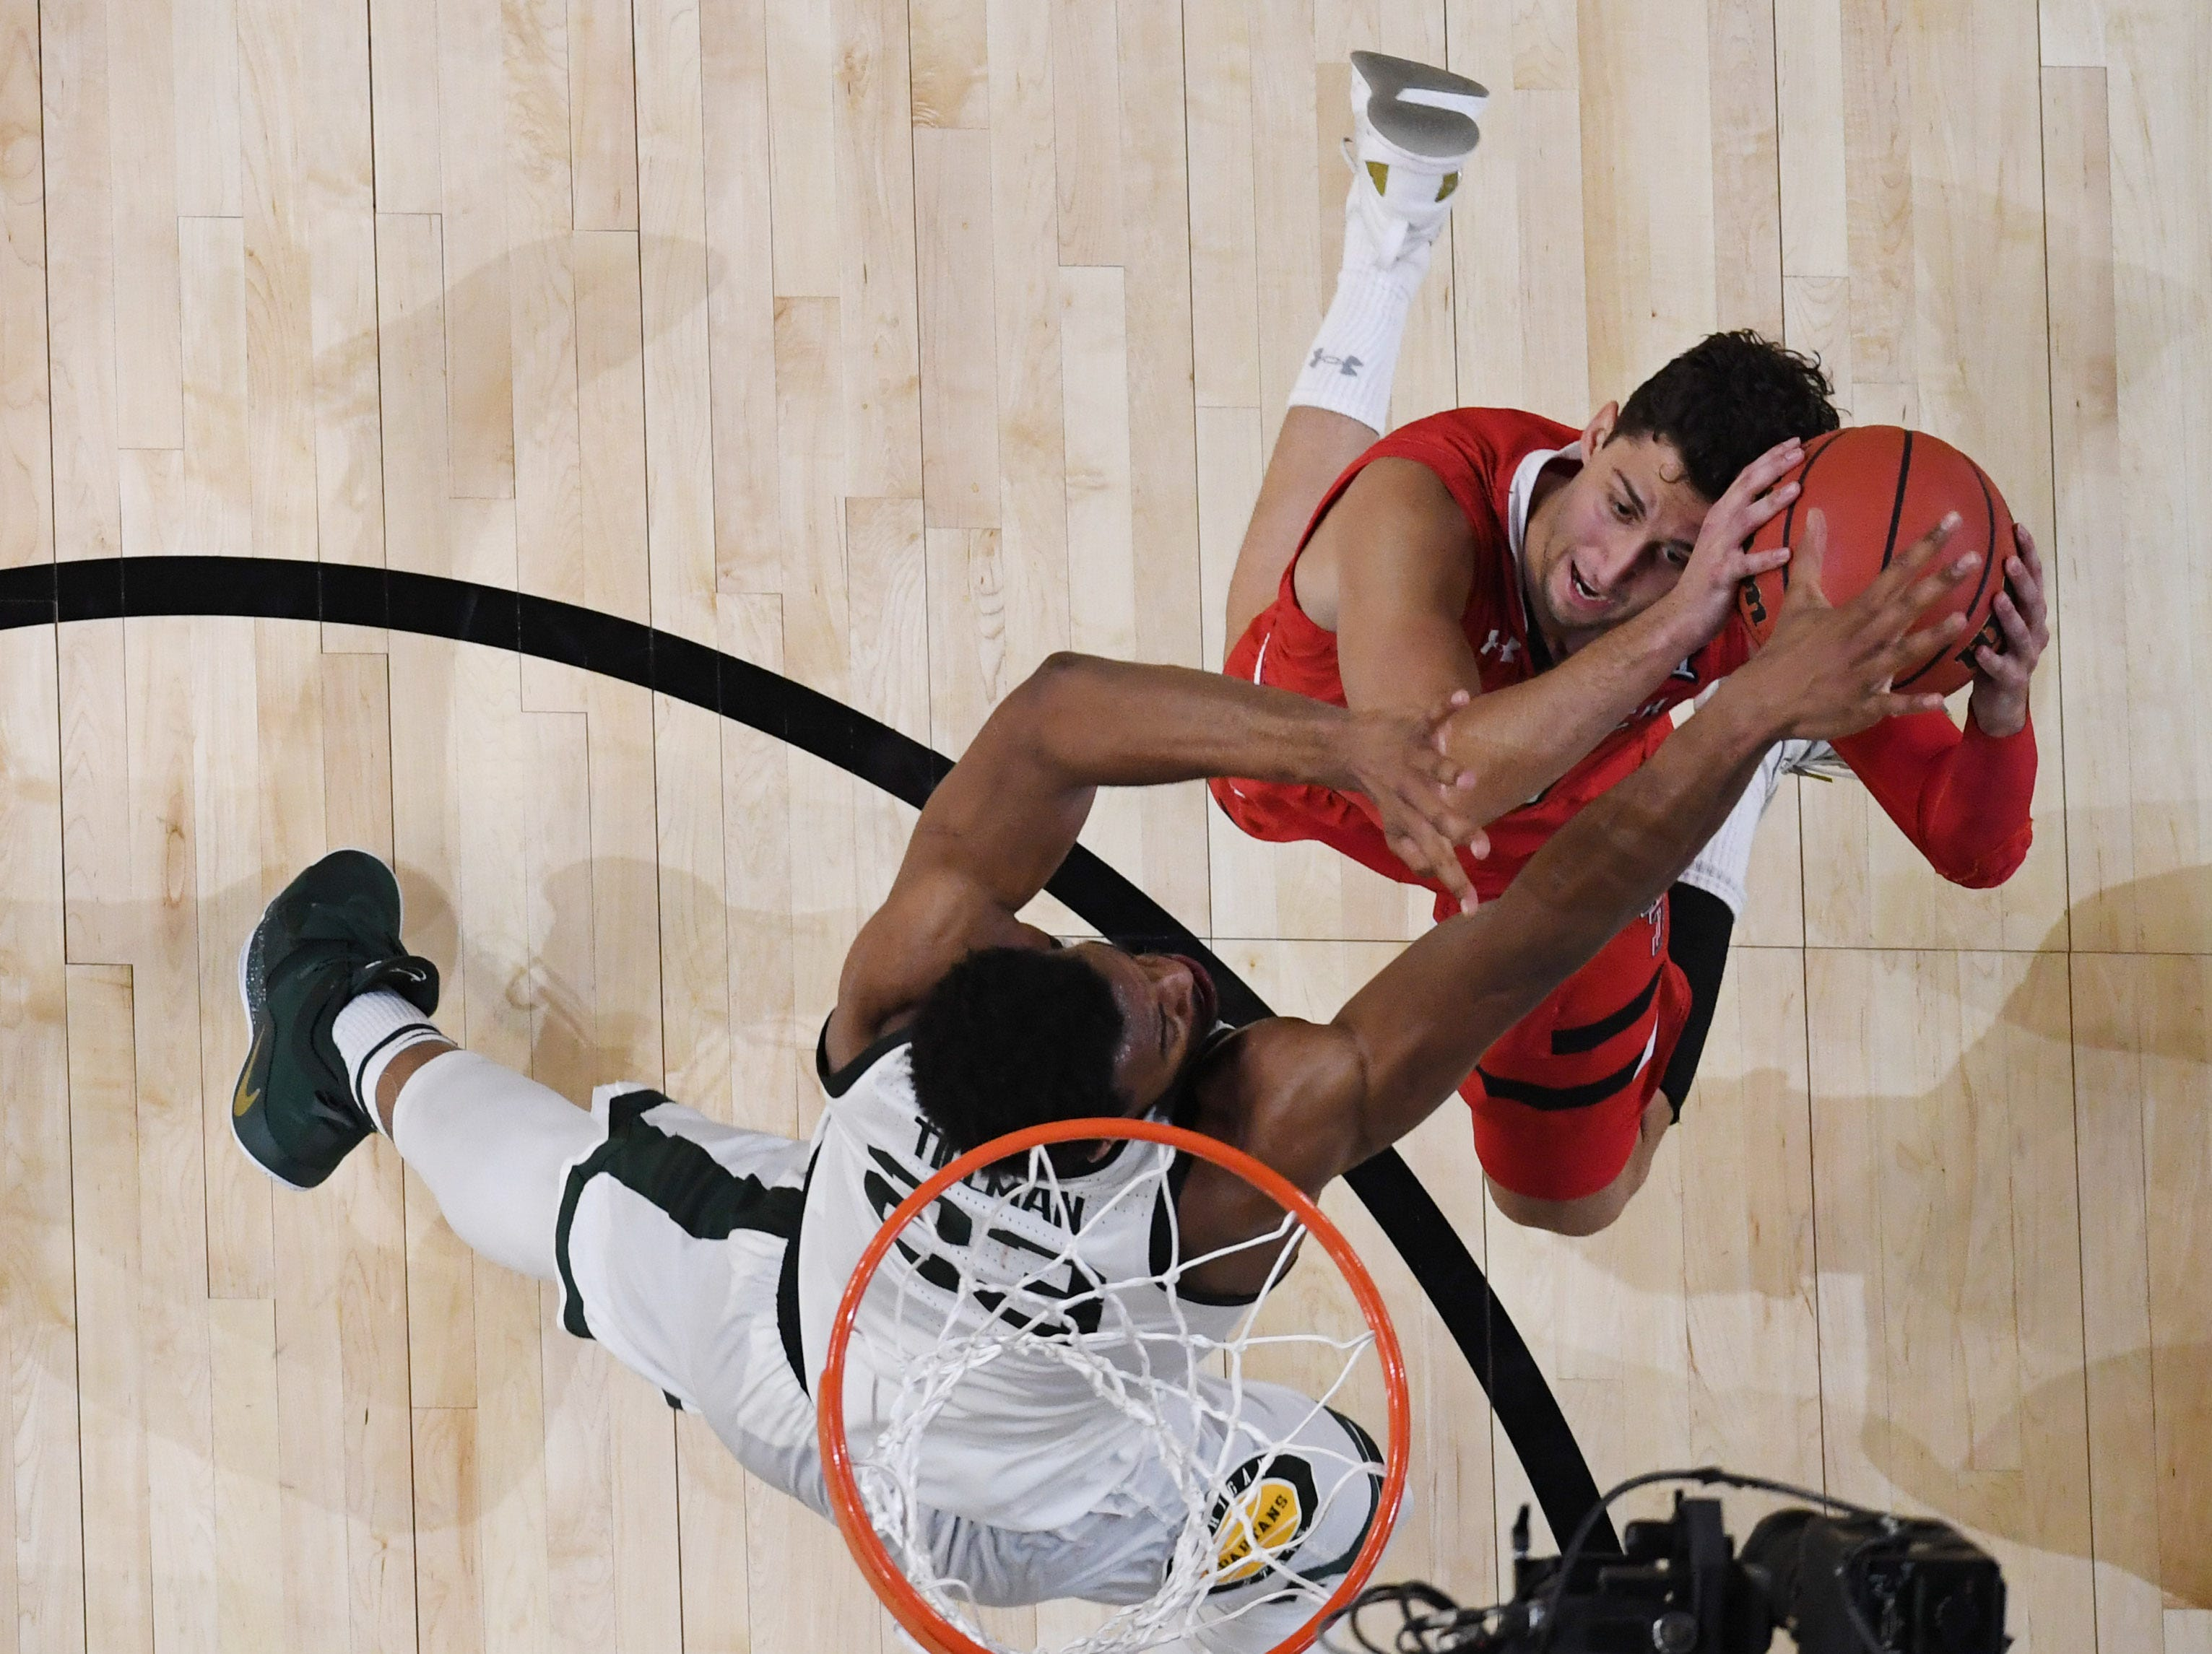 Apr 6, 2019; Minneapolis, MN, USA; Texas Tech Red Raiders guard Davide Moretti (25) shoots against Michigan State Spartans forward Xavier Tillman (23) in the semifinals of the 2019 men's Final Four at US Bank Stadium. Mandatory Credit: Robert Deutsch-USA TODAY Sports